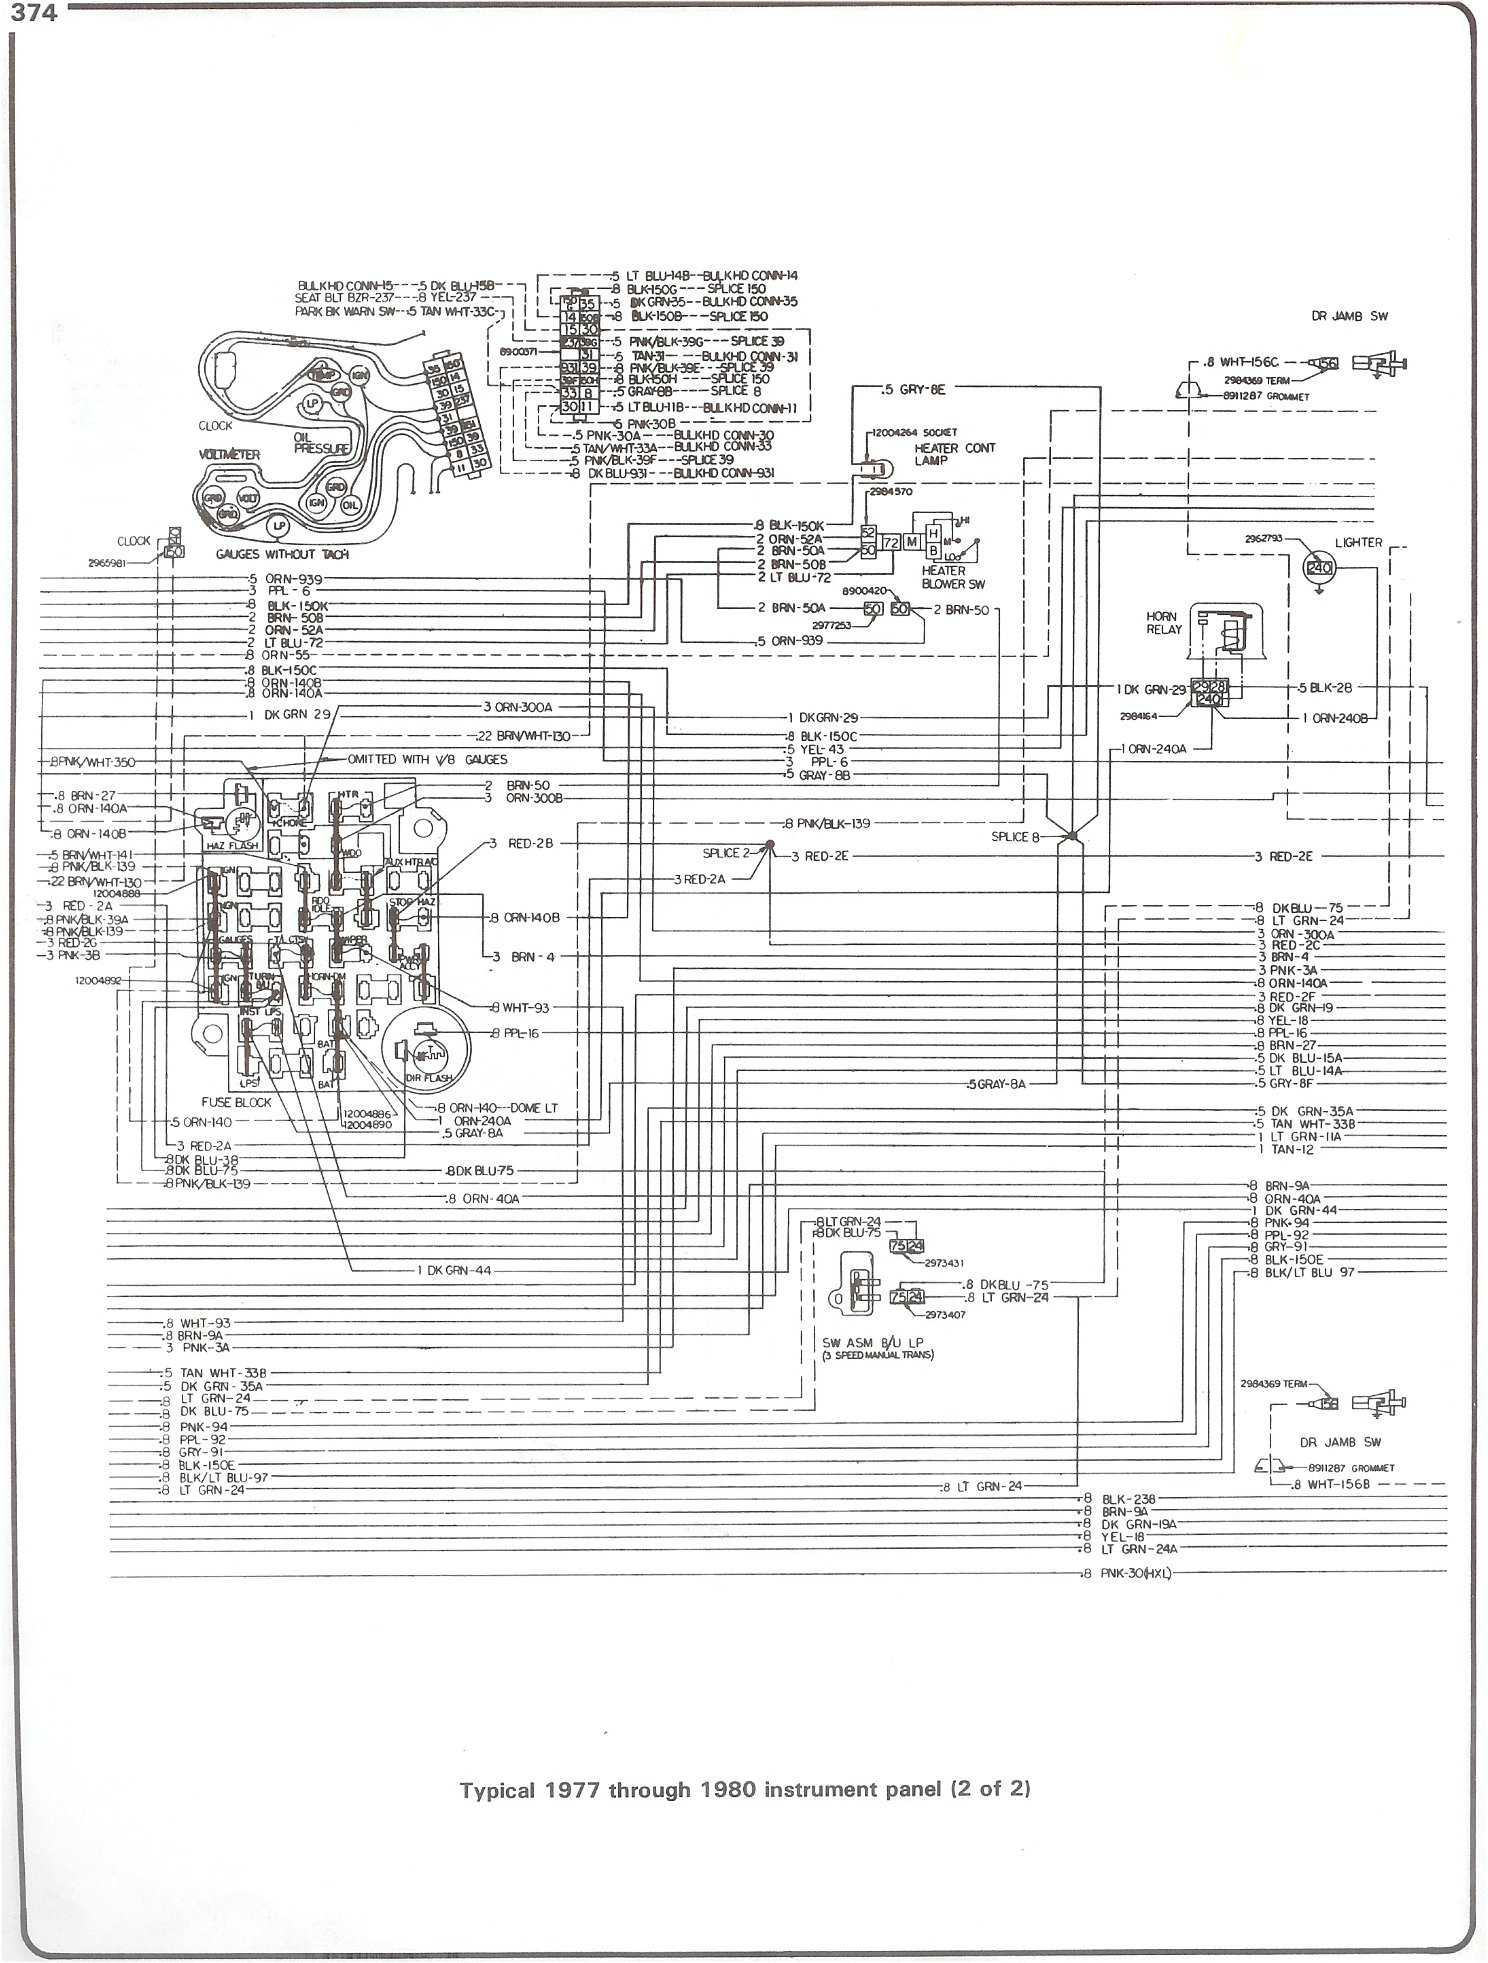 K20 Wiring Harness Diagram Free For You 1978 Toyota Hilux Engine Chevy Simple Site Rh 14 6 5 Ohnevergnuegen De